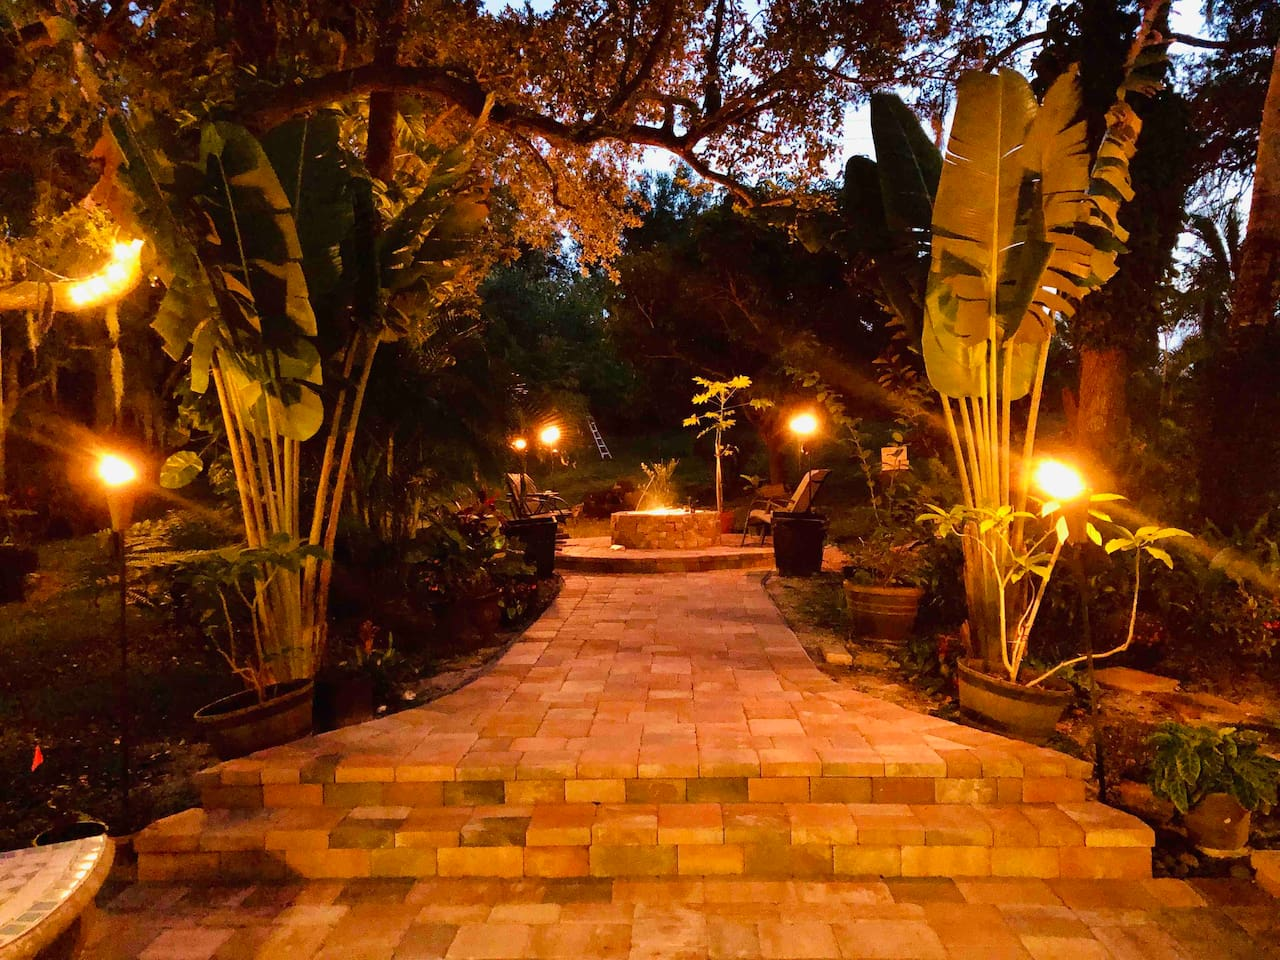 This place transforms at night. Romantic evening by the fire, or gathering with friends to celebrate your accomplishments... The perfect outdoor space!